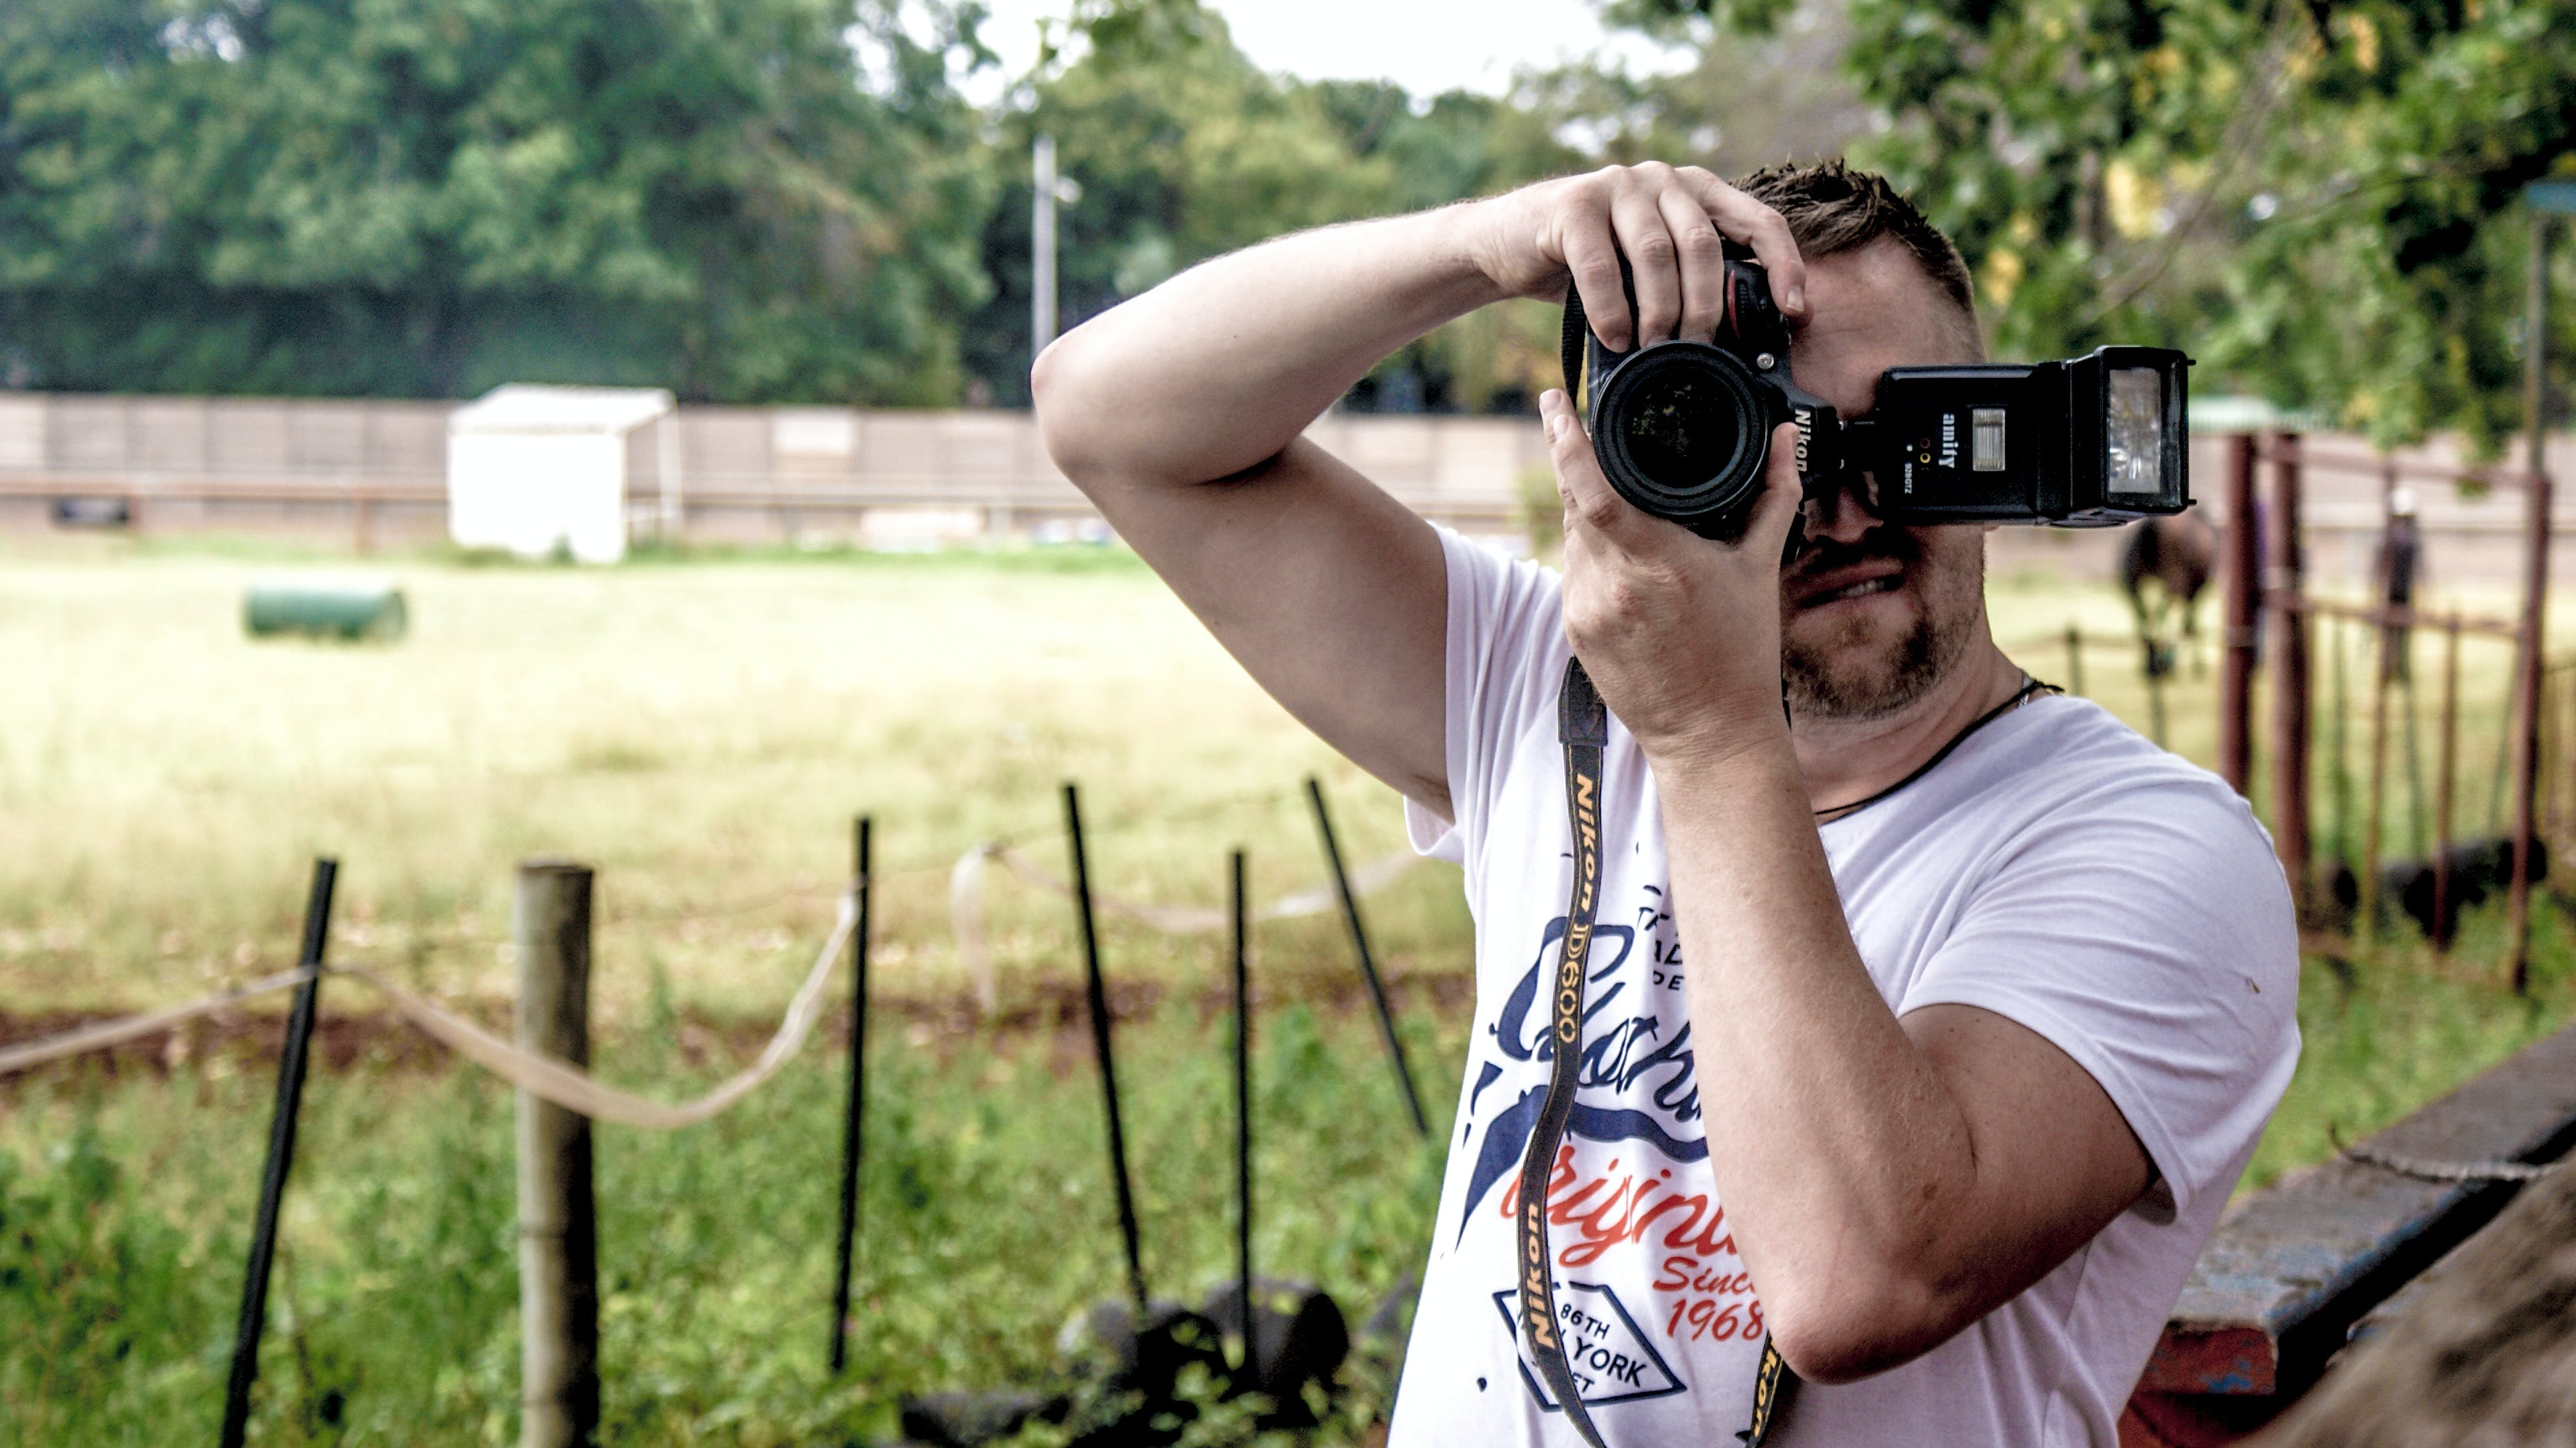 Man Holding Dslr Camera While Standing Near Fence